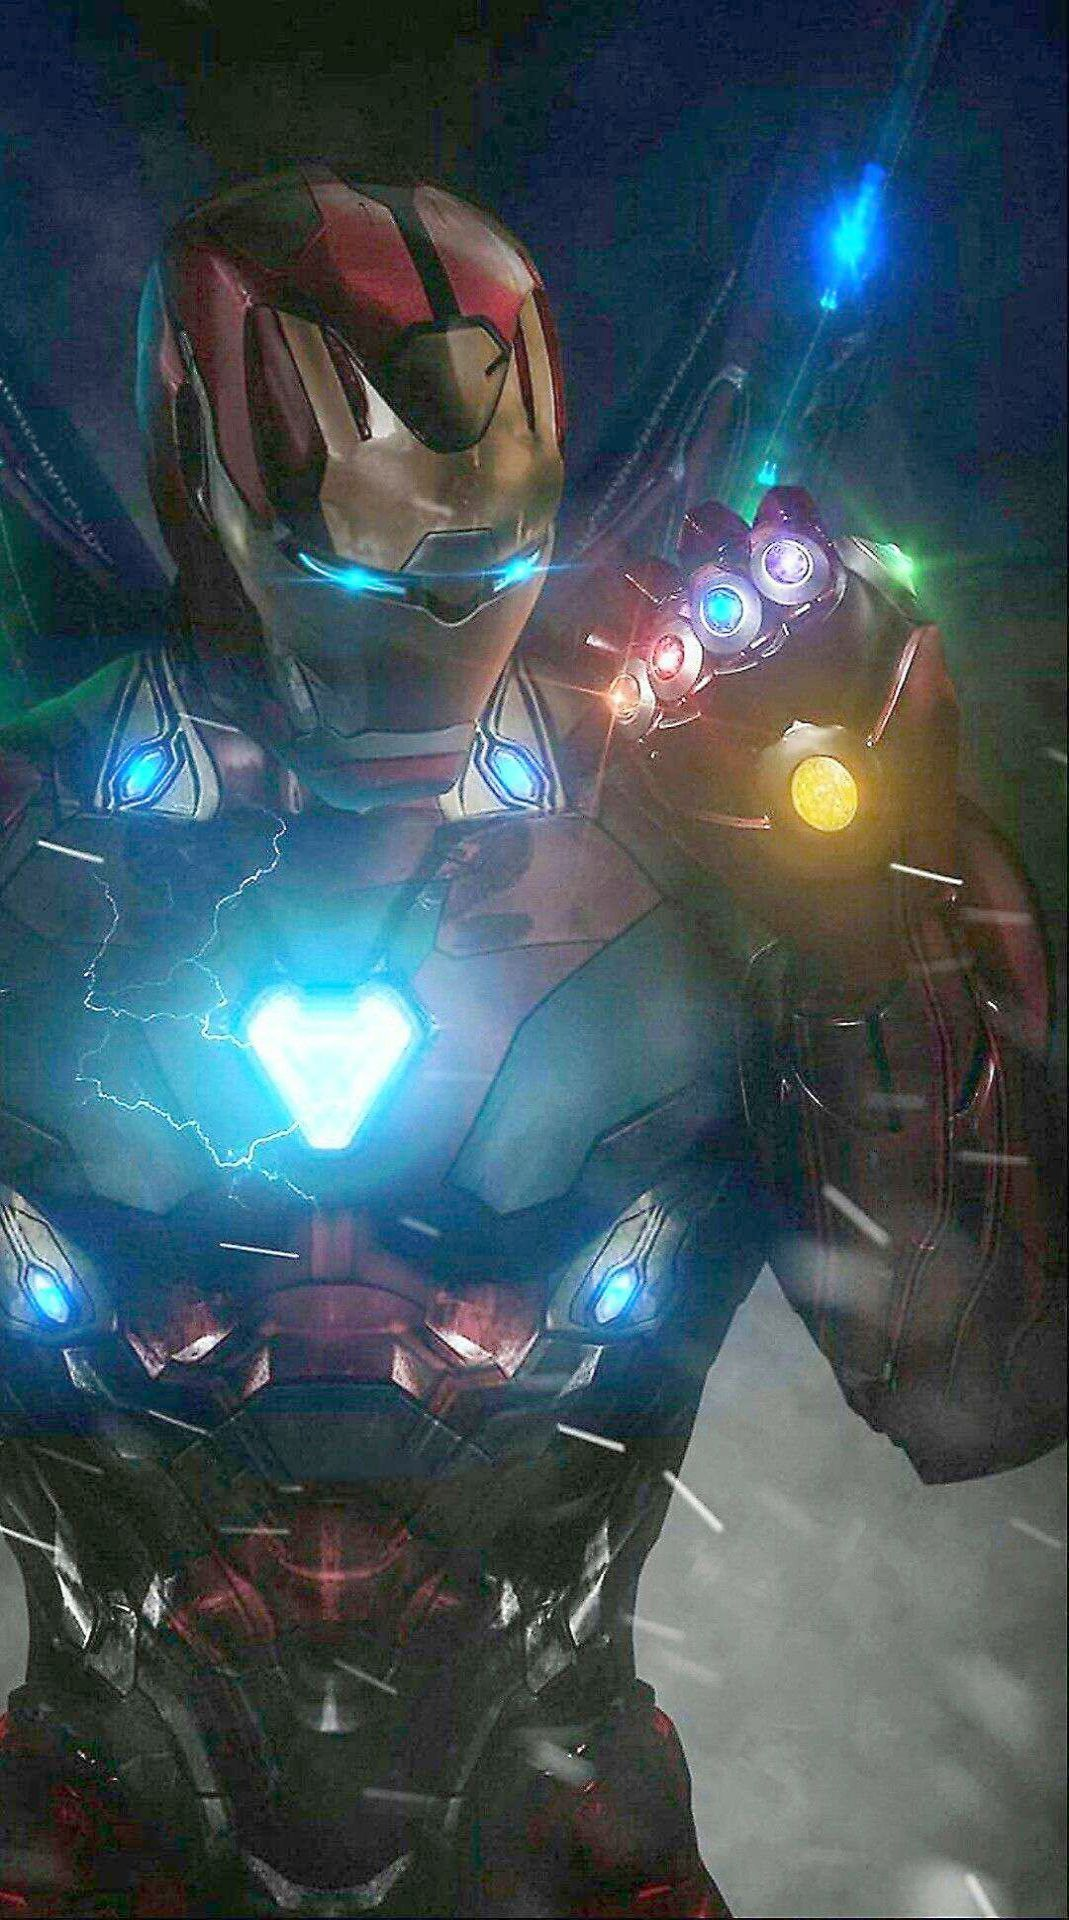 Backgrounds For Iphone 7 Plus Both Wallpapers For Iphone X Galaxy Such Wallpaper Iphone 8 Plus Sky Iron Man Wallpaper Iron Man Avengers Iron Man Art